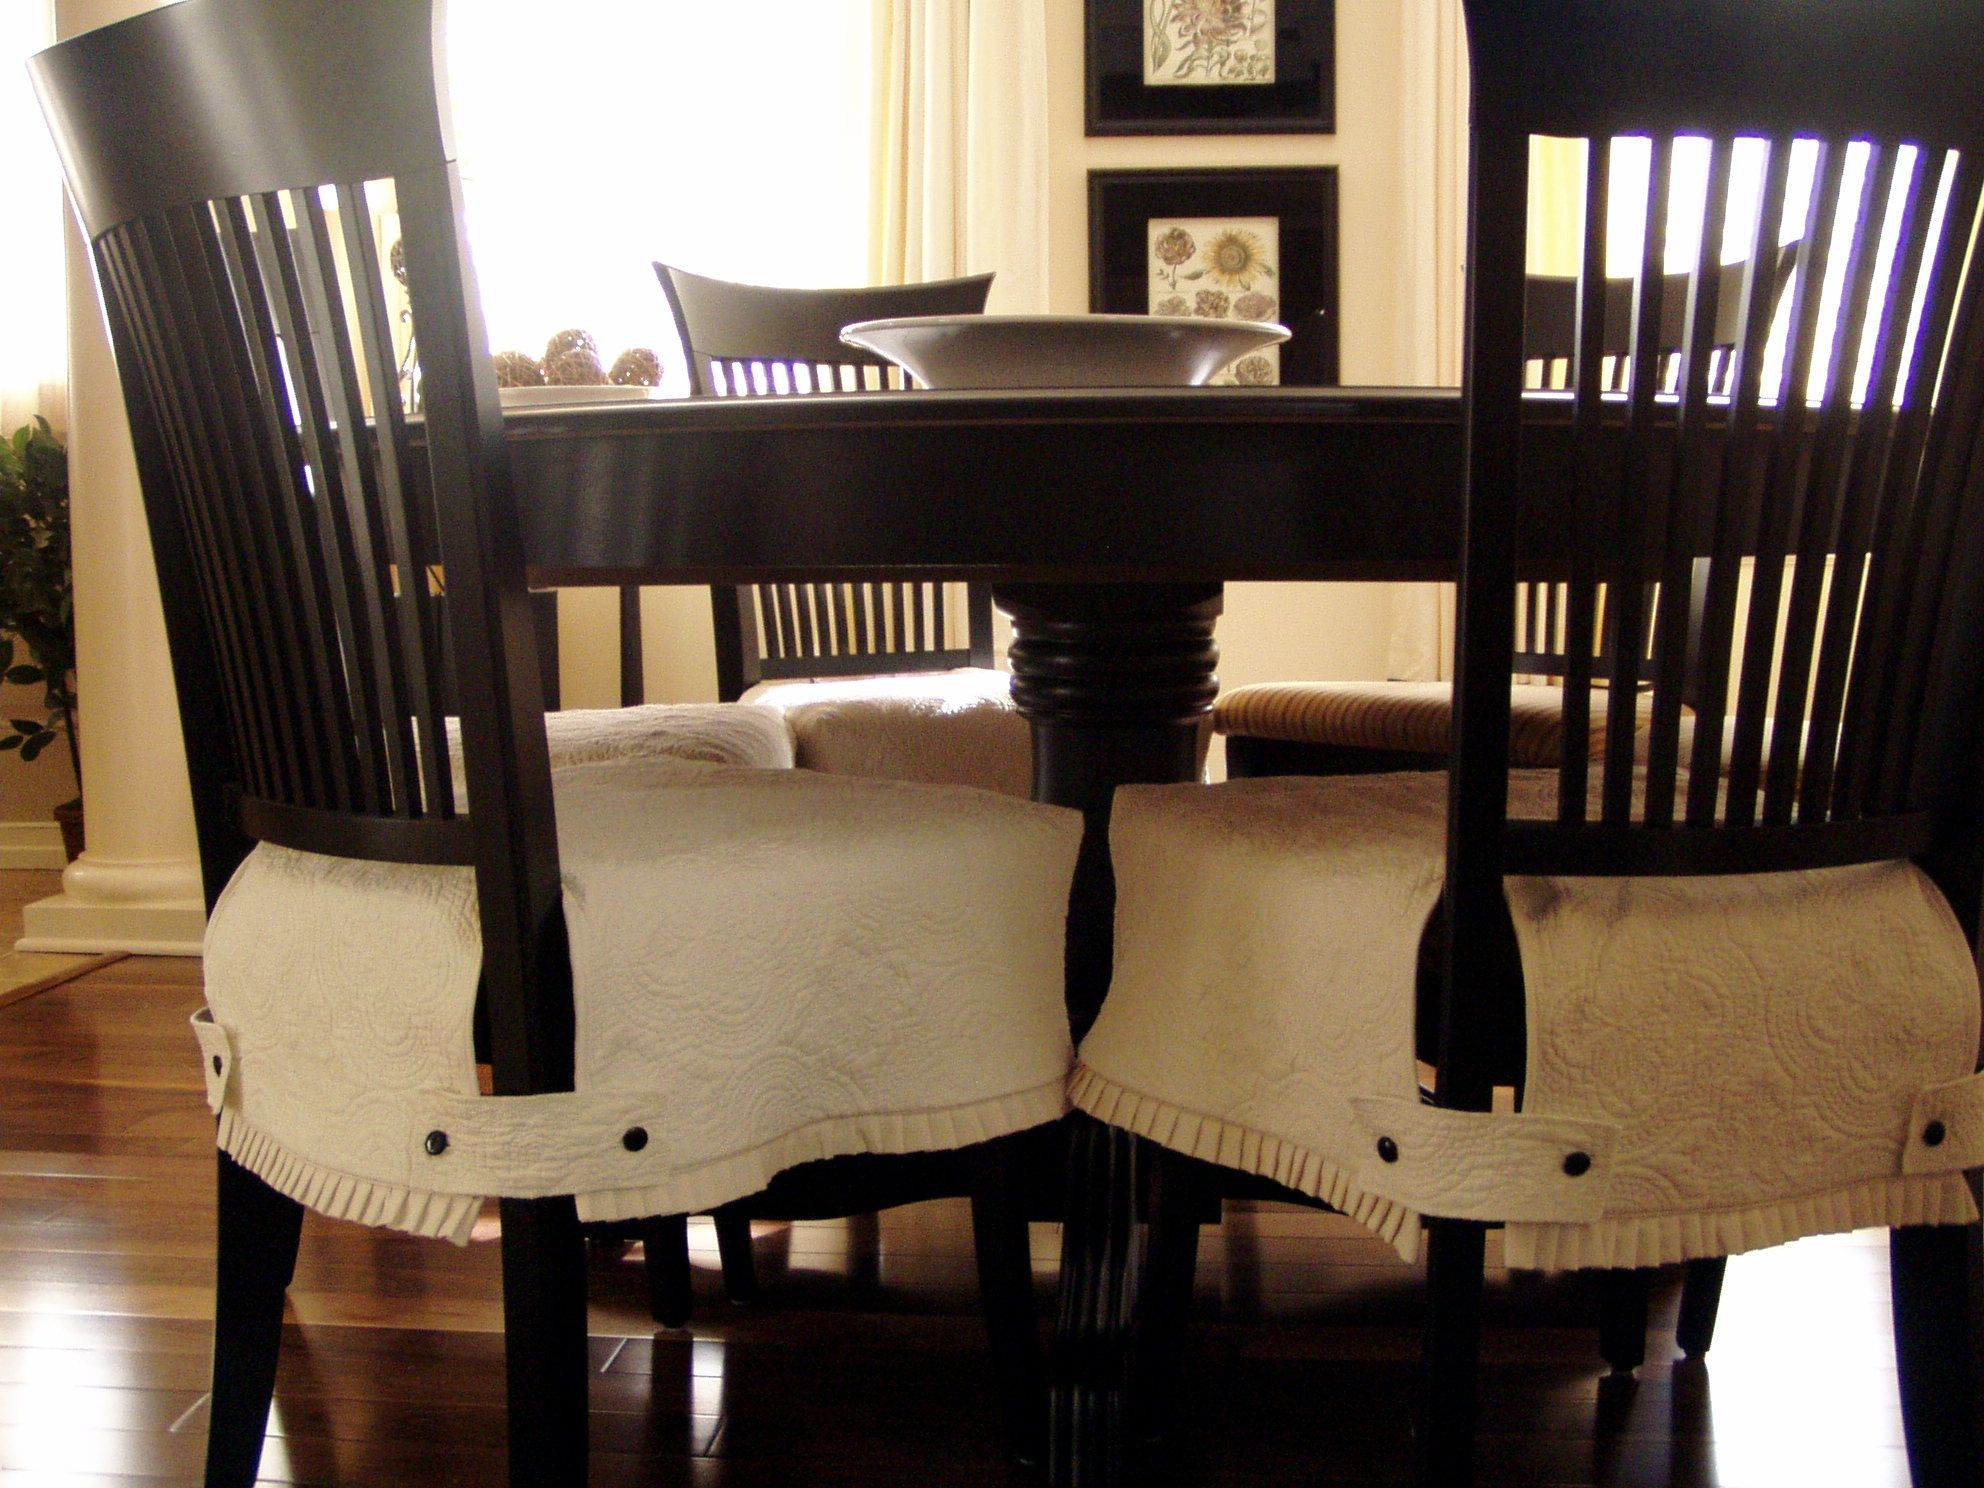 Sewing Seat Covers For Dining Room Chairs